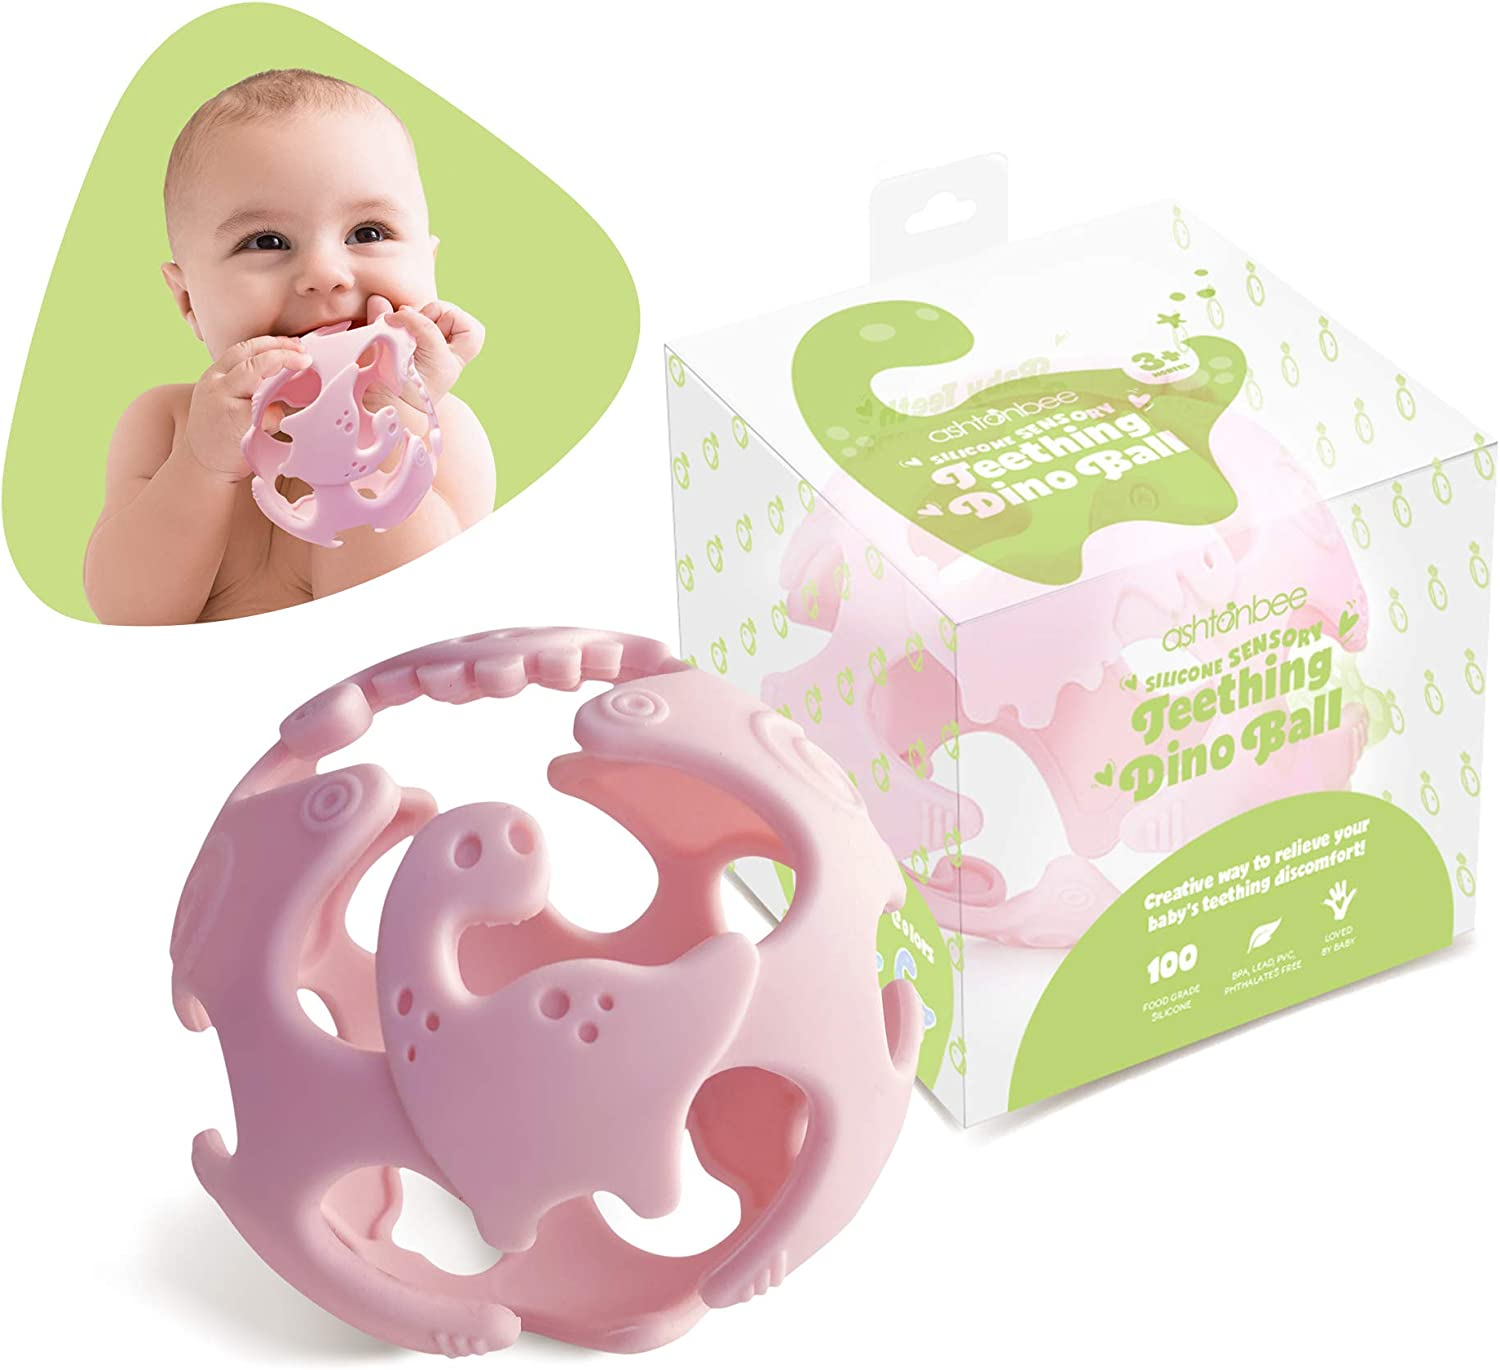 Soothing Teething Toy from Birth Green Baby Teething Toys for Babies 0-6 Months Teethers for Infants /& Toddlers BPA Free Non-Toxic Silicone Molars Adjustable Chew